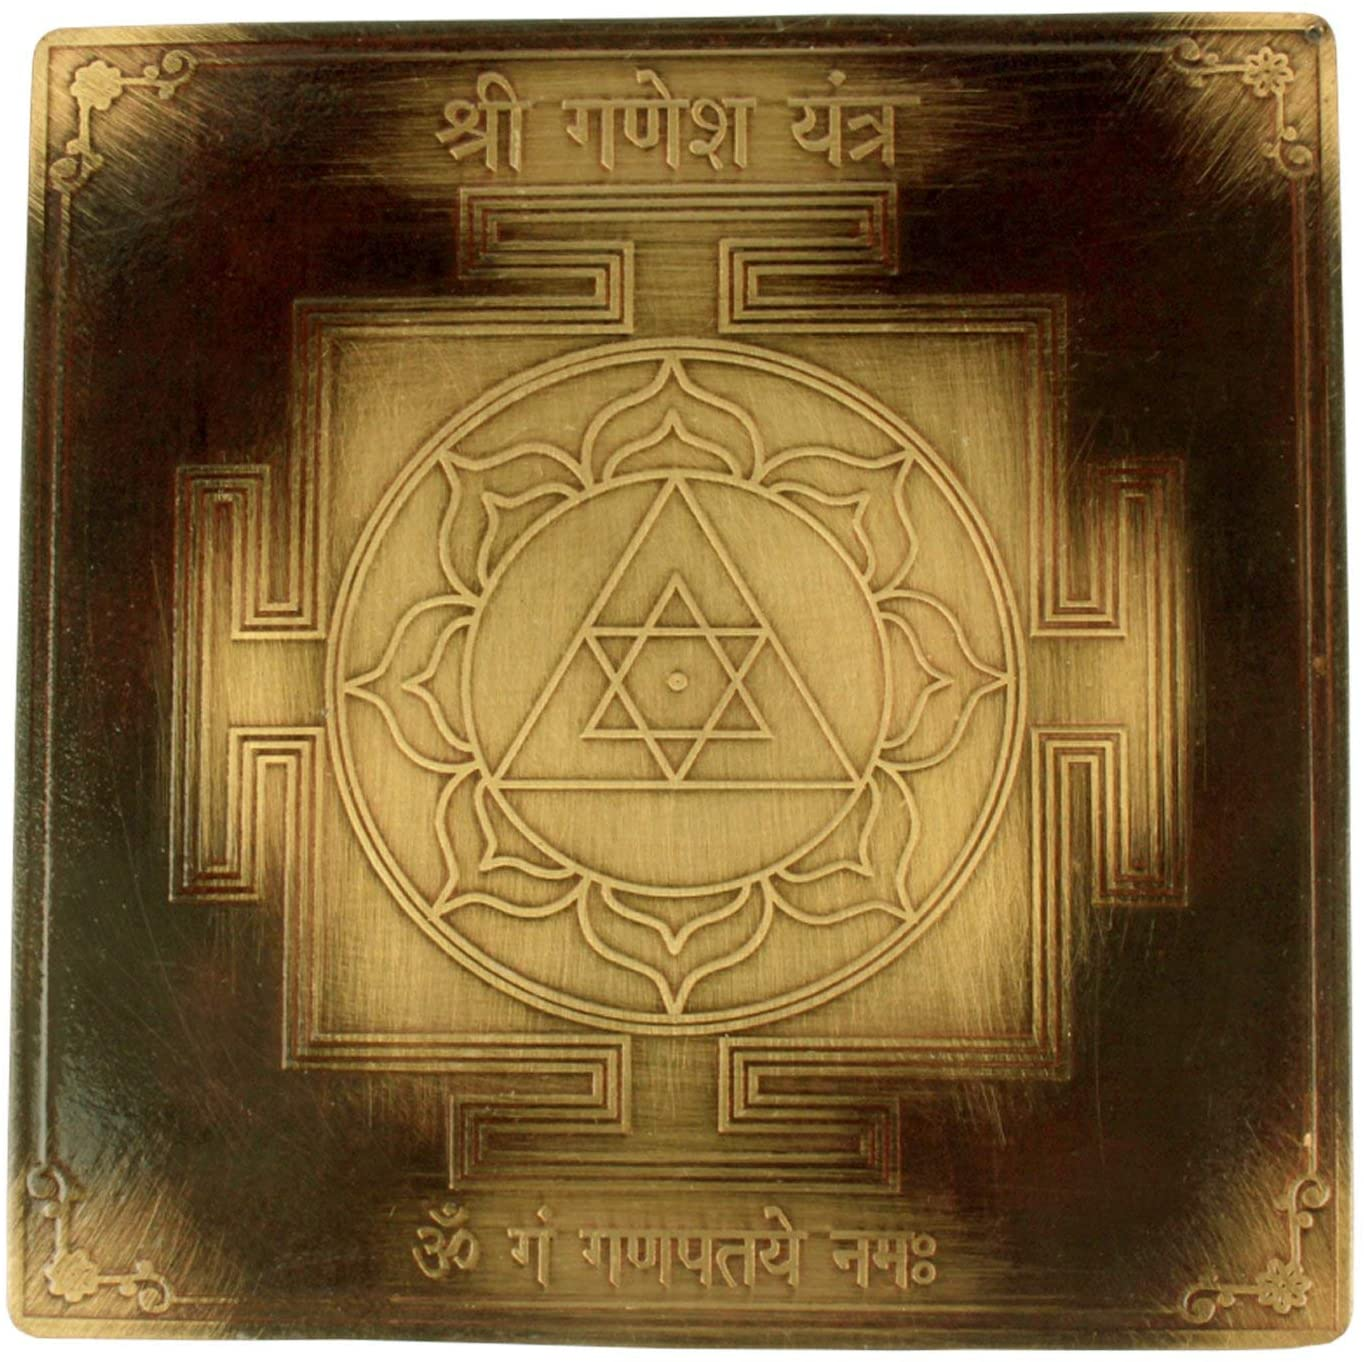 Tatva Yog Copper Plated Shree Ganesh Yantra Effective For Home, Office, Shop, Living Room, Reception, Study Room with Accurate Cutting, 3 inches